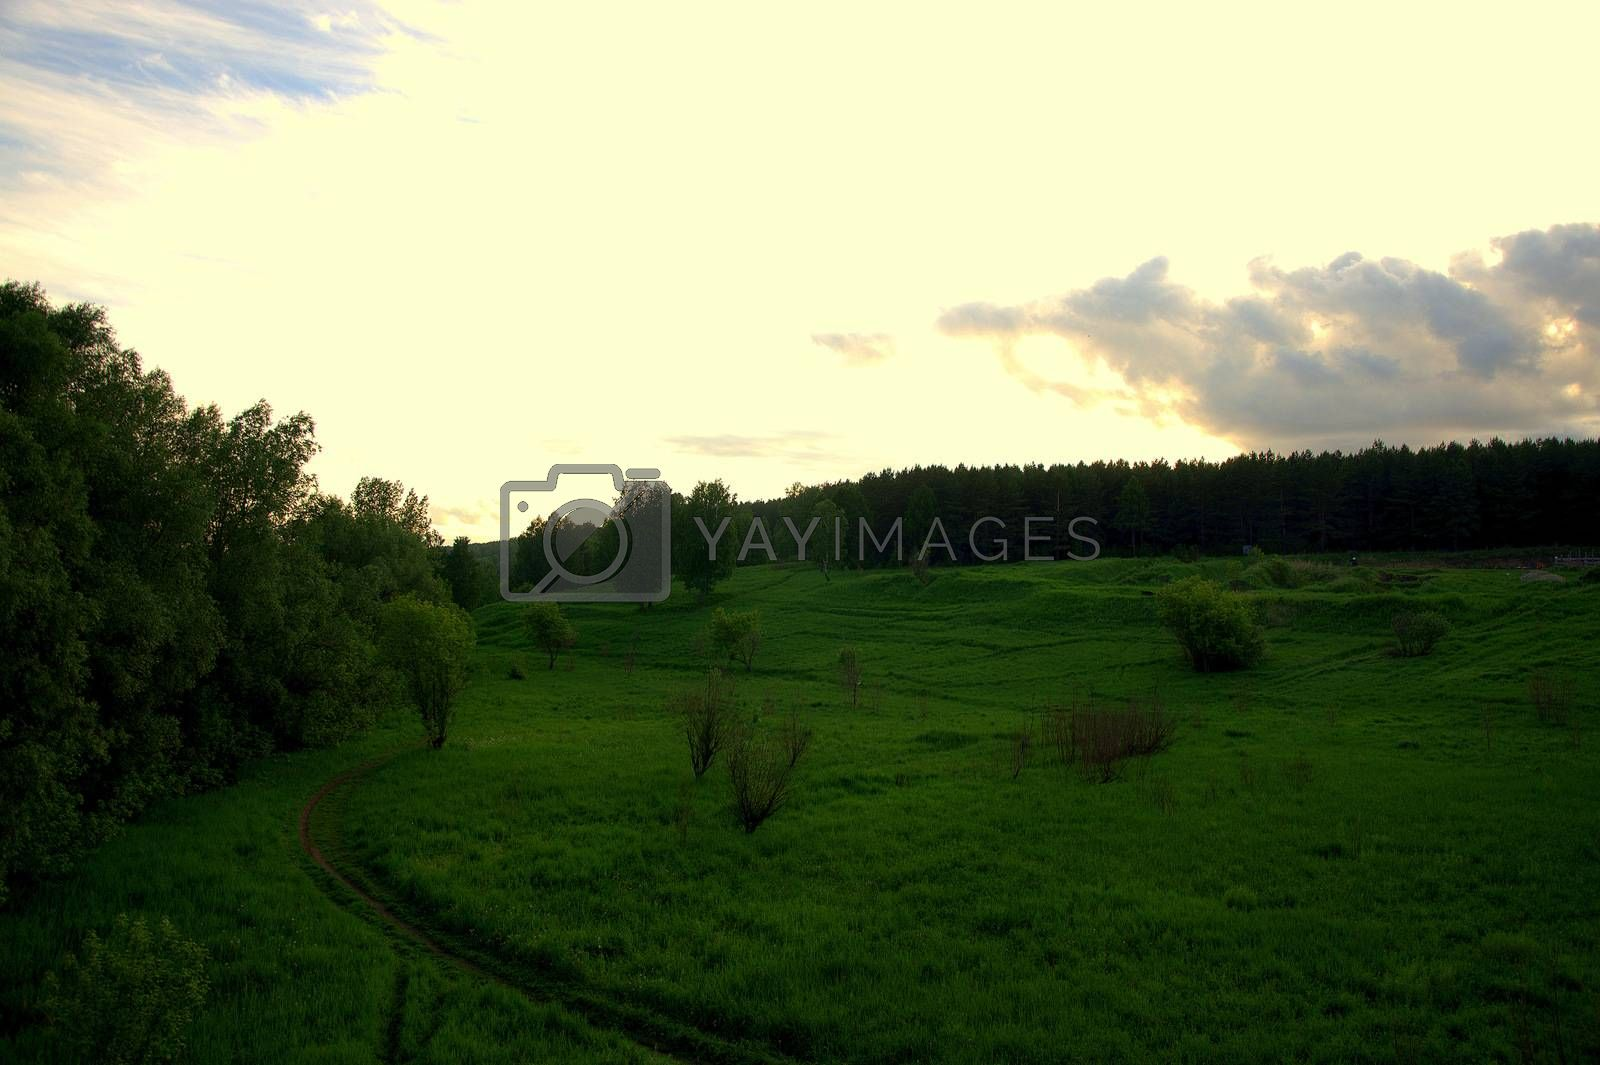 The road through the field is surrounded by bushes and meadow grass, which goes under sunset clouds. Siberia.